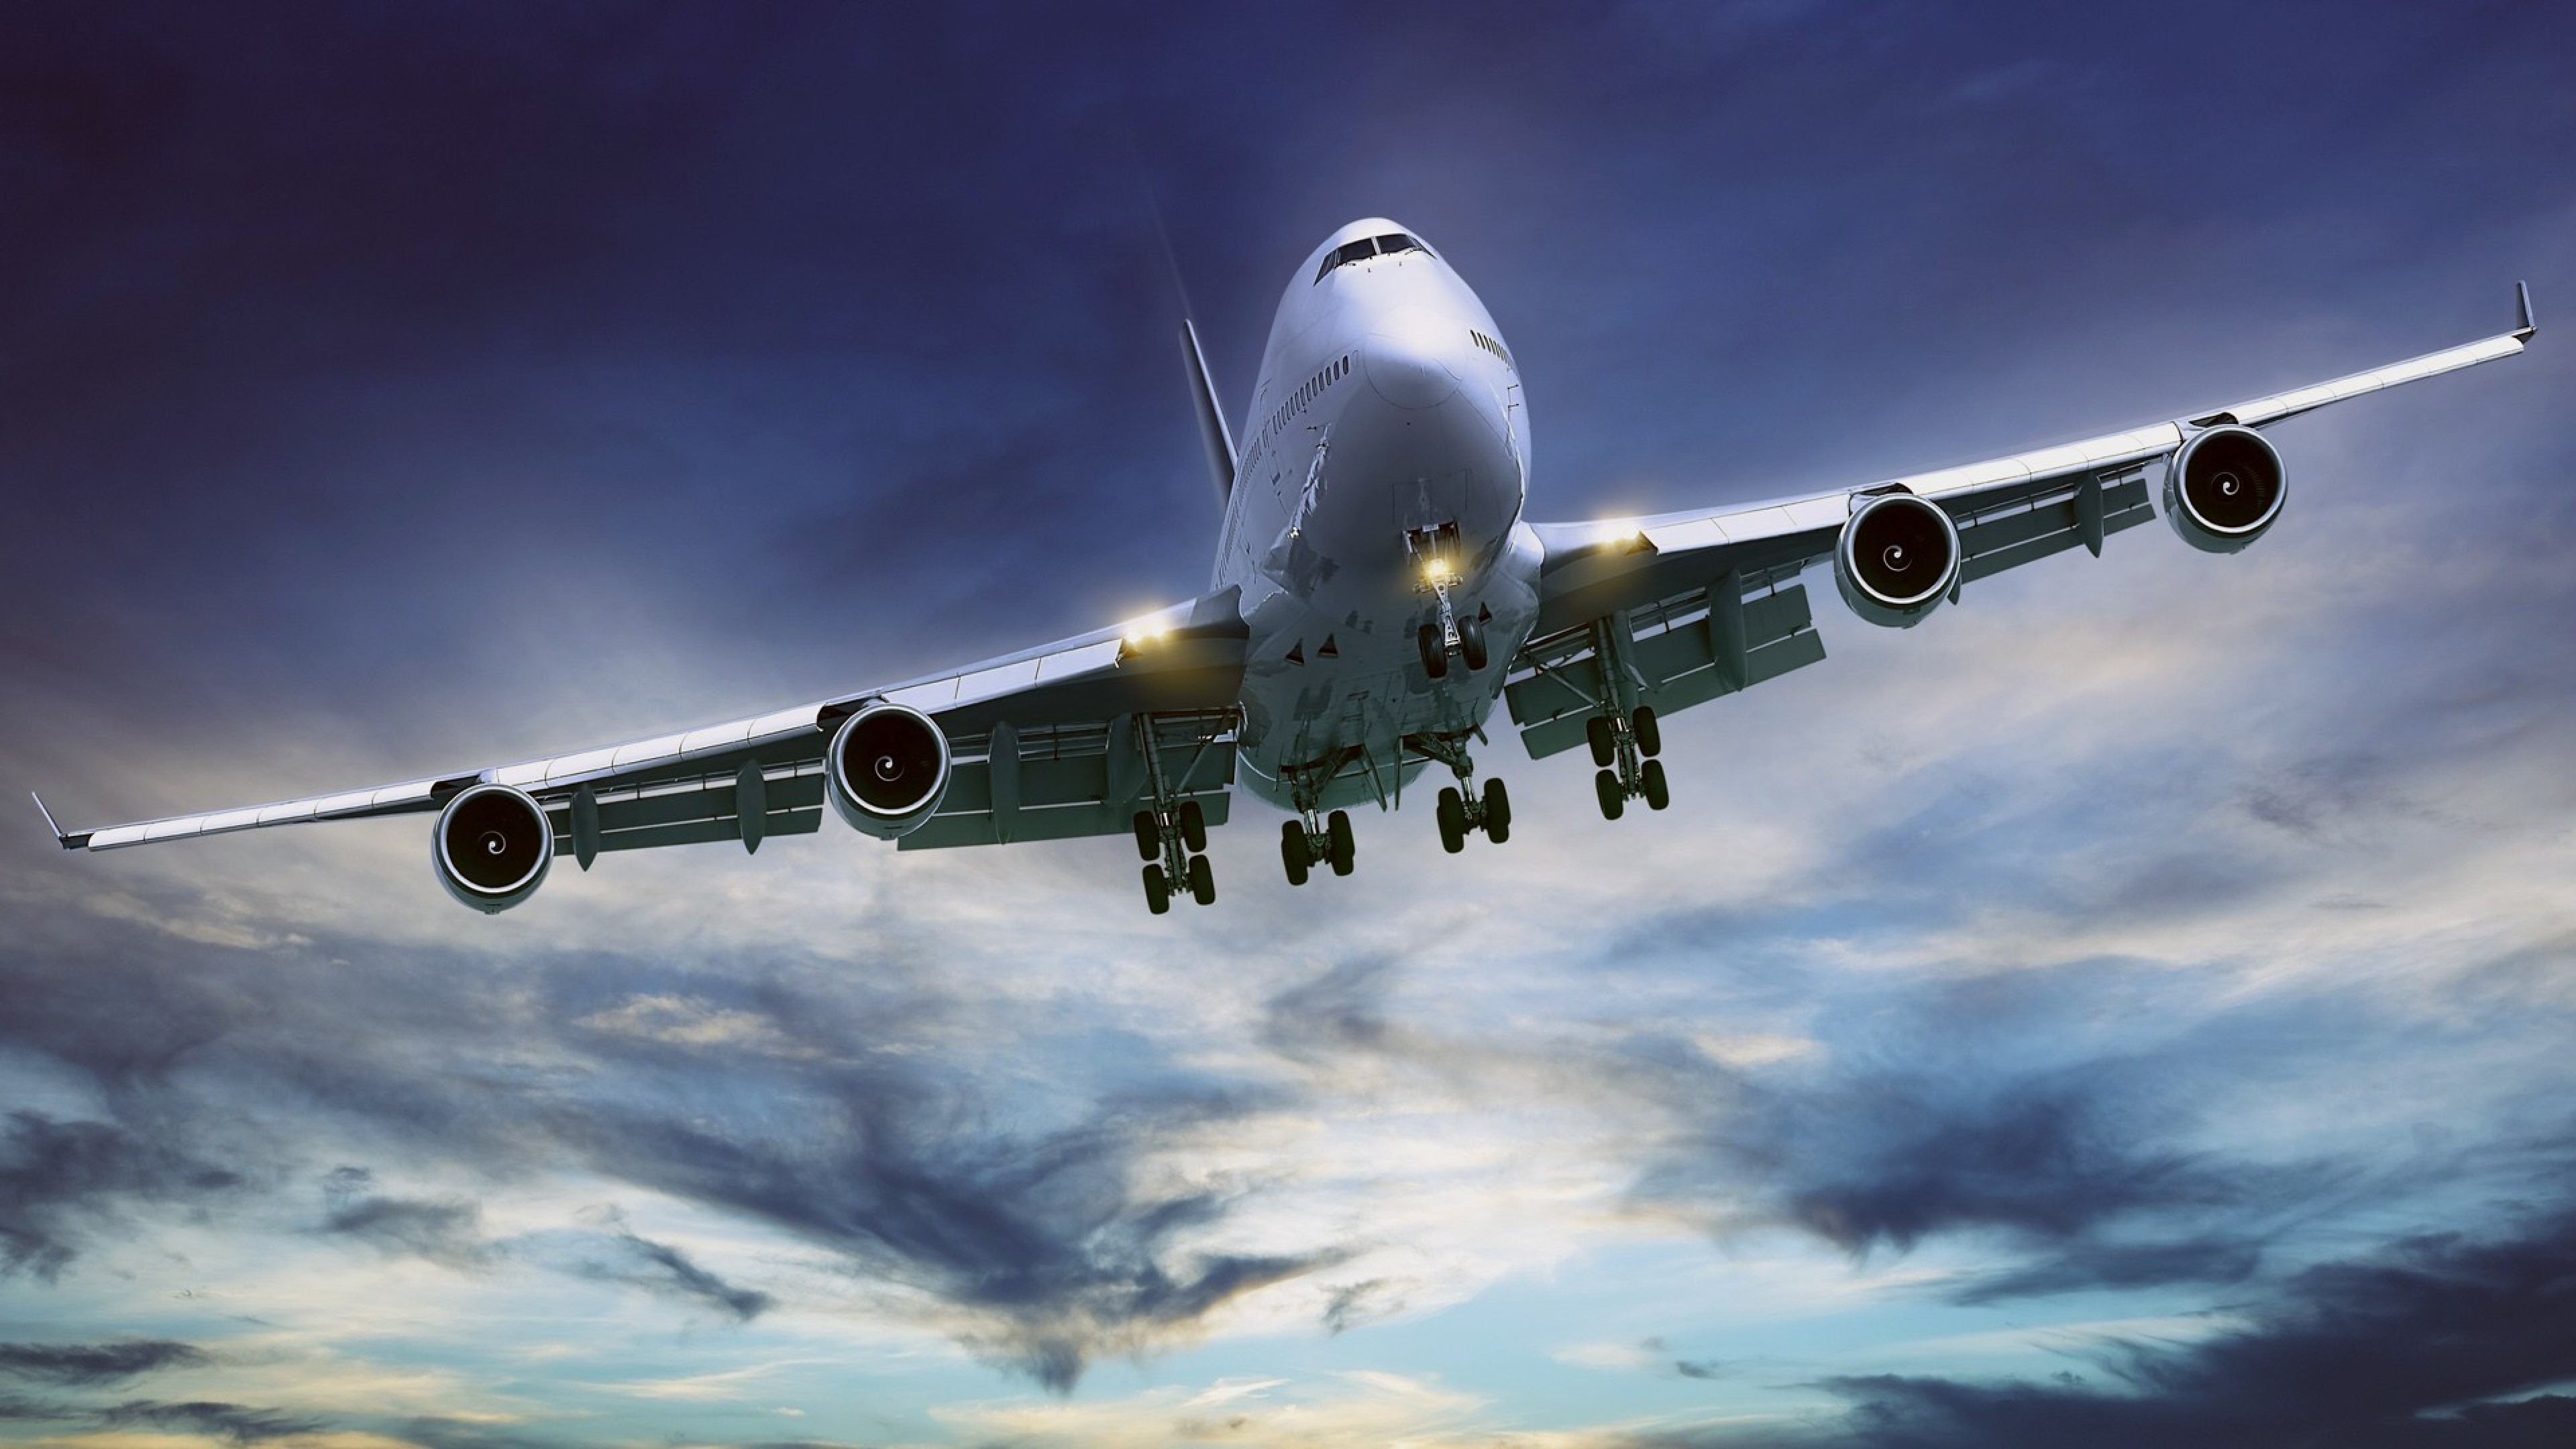 Hd Wallpaper Airplanes Jet Aicraft Wallpapers Trend